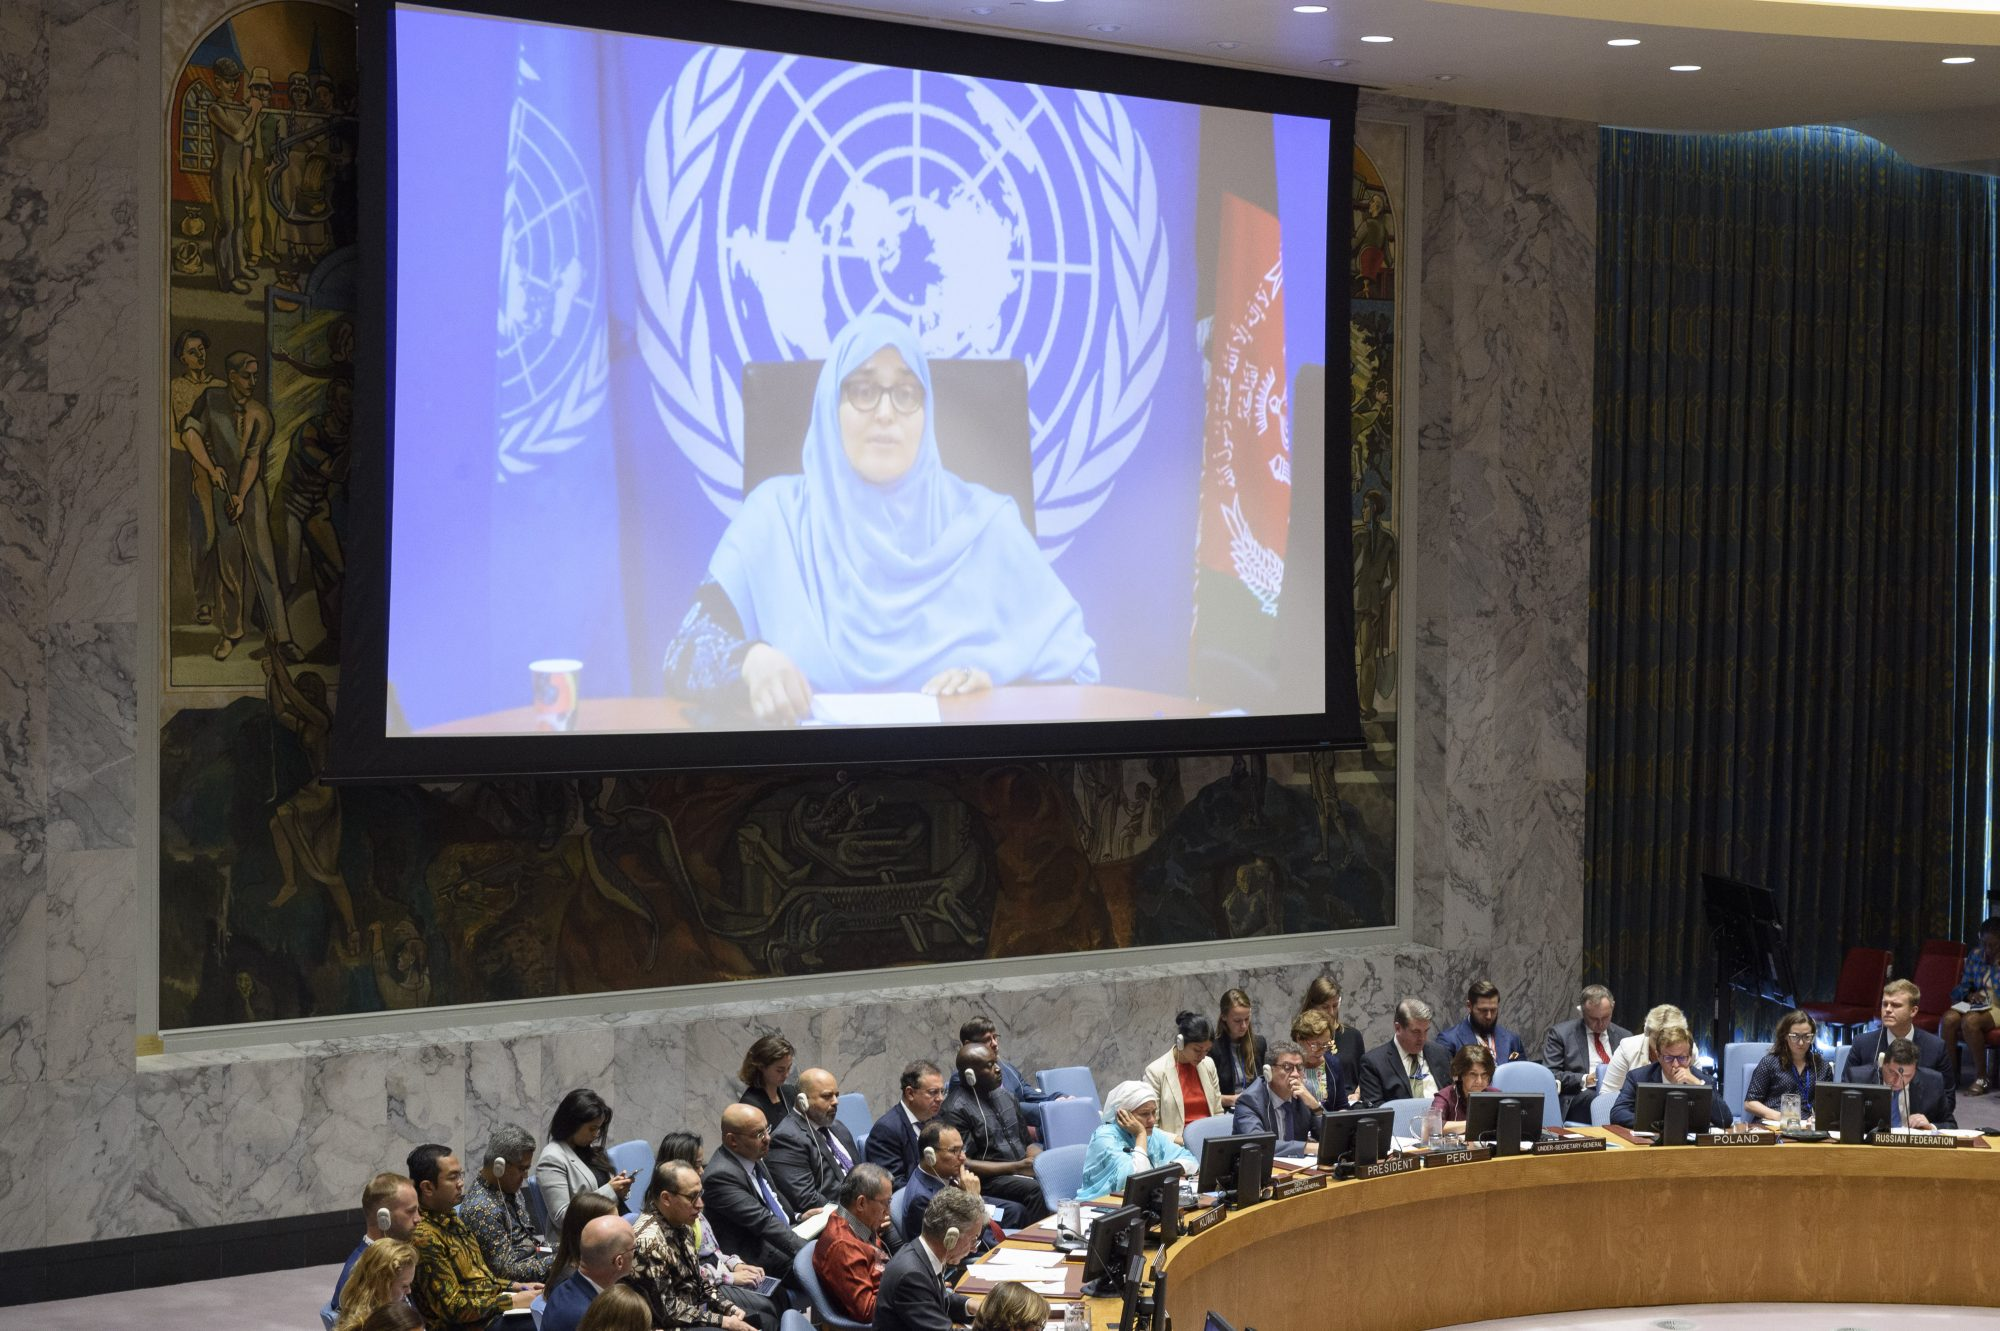 UN Security Council Briefing on Afghanistan by Jamila Afghani